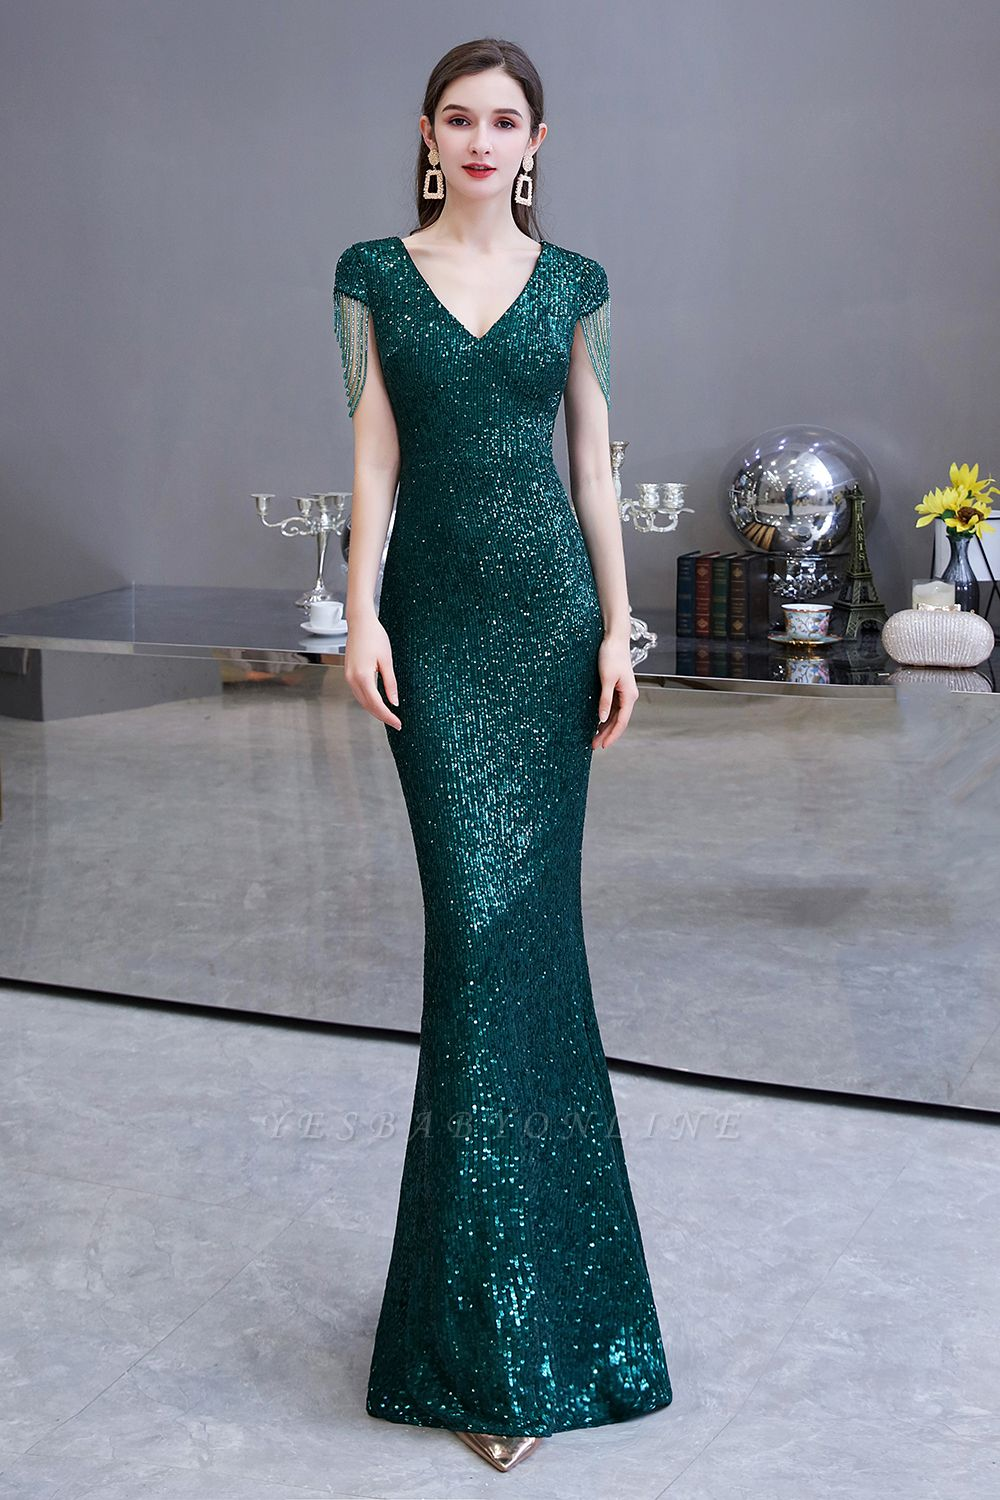 V-neck Cap Sleeves Floor Length Emerald Fitted Sequin Prom Dresses